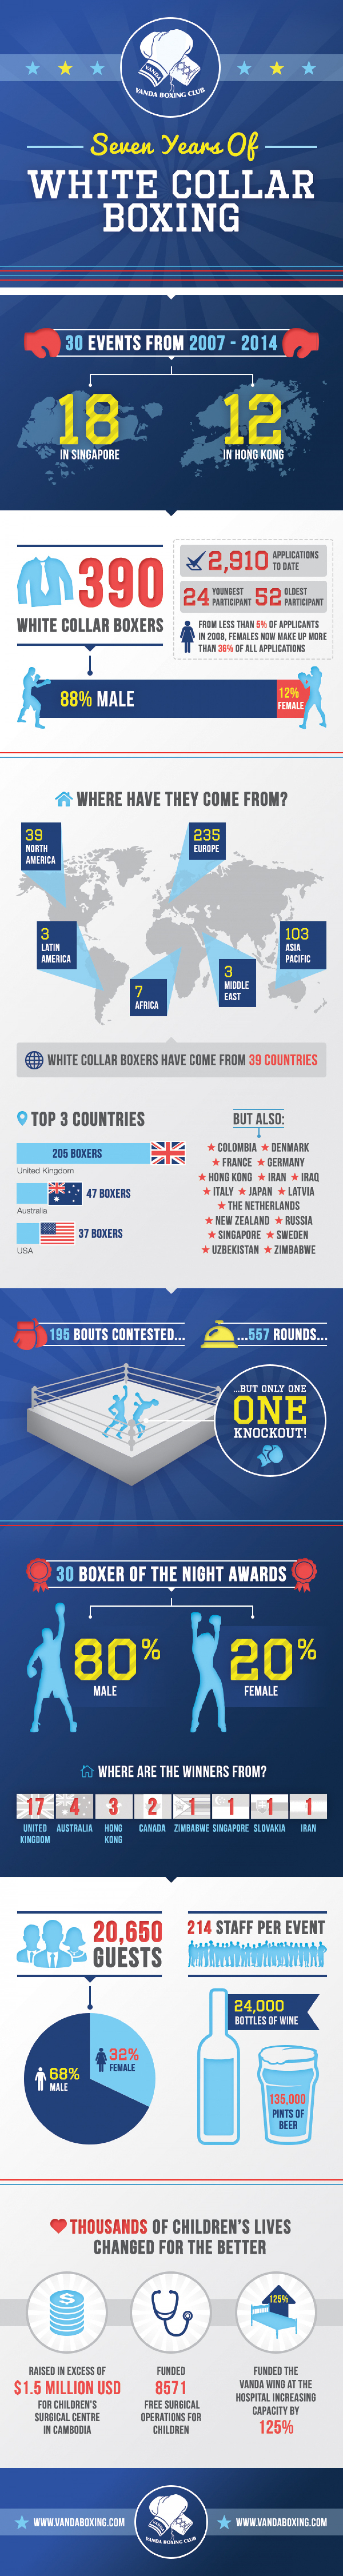 Seven Years of White Collar Boxing Infographic